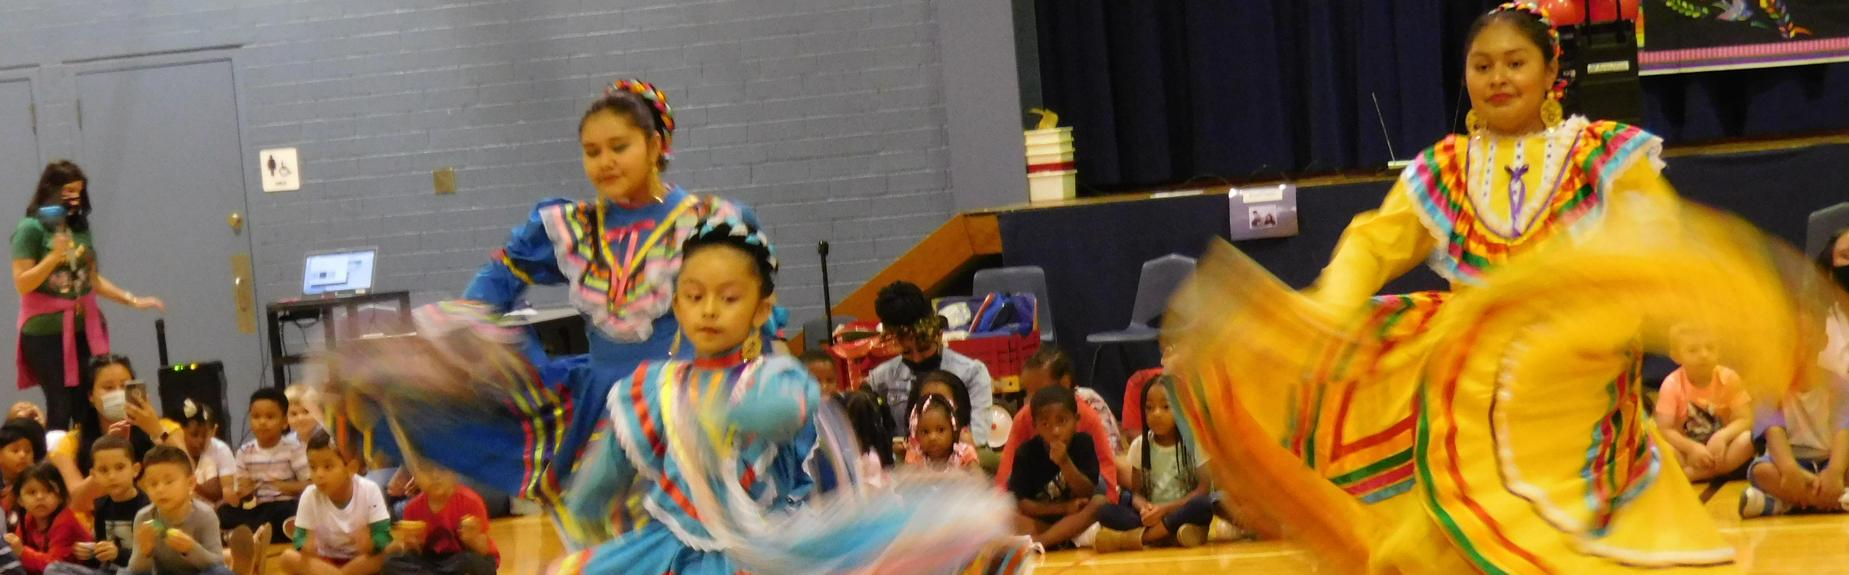 Visiting Students Dance in celebration of Cinco de Mayo